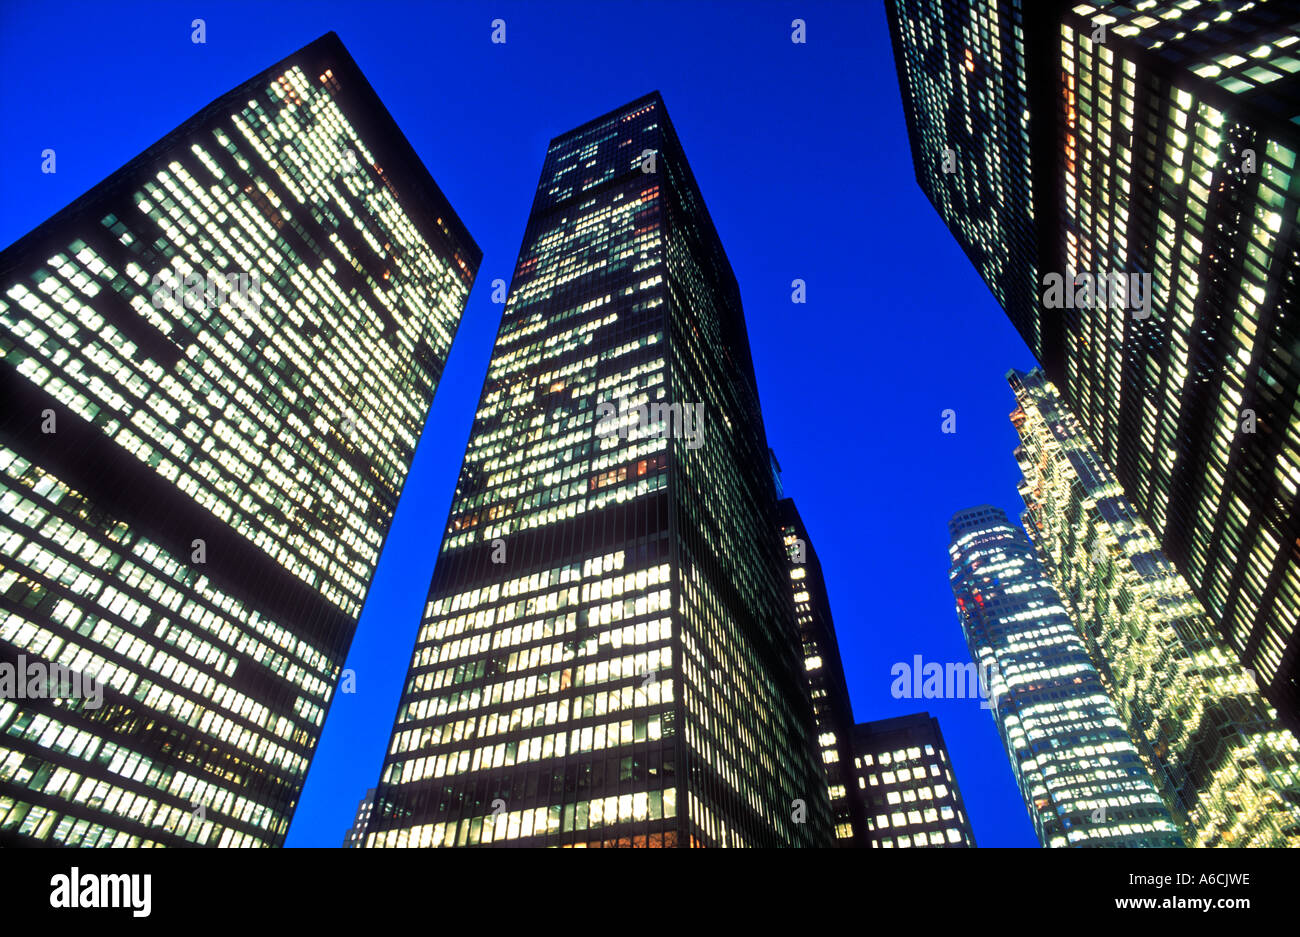 Canada Ontario Toronto office towers in the financial district illuminated at night - Stock Image